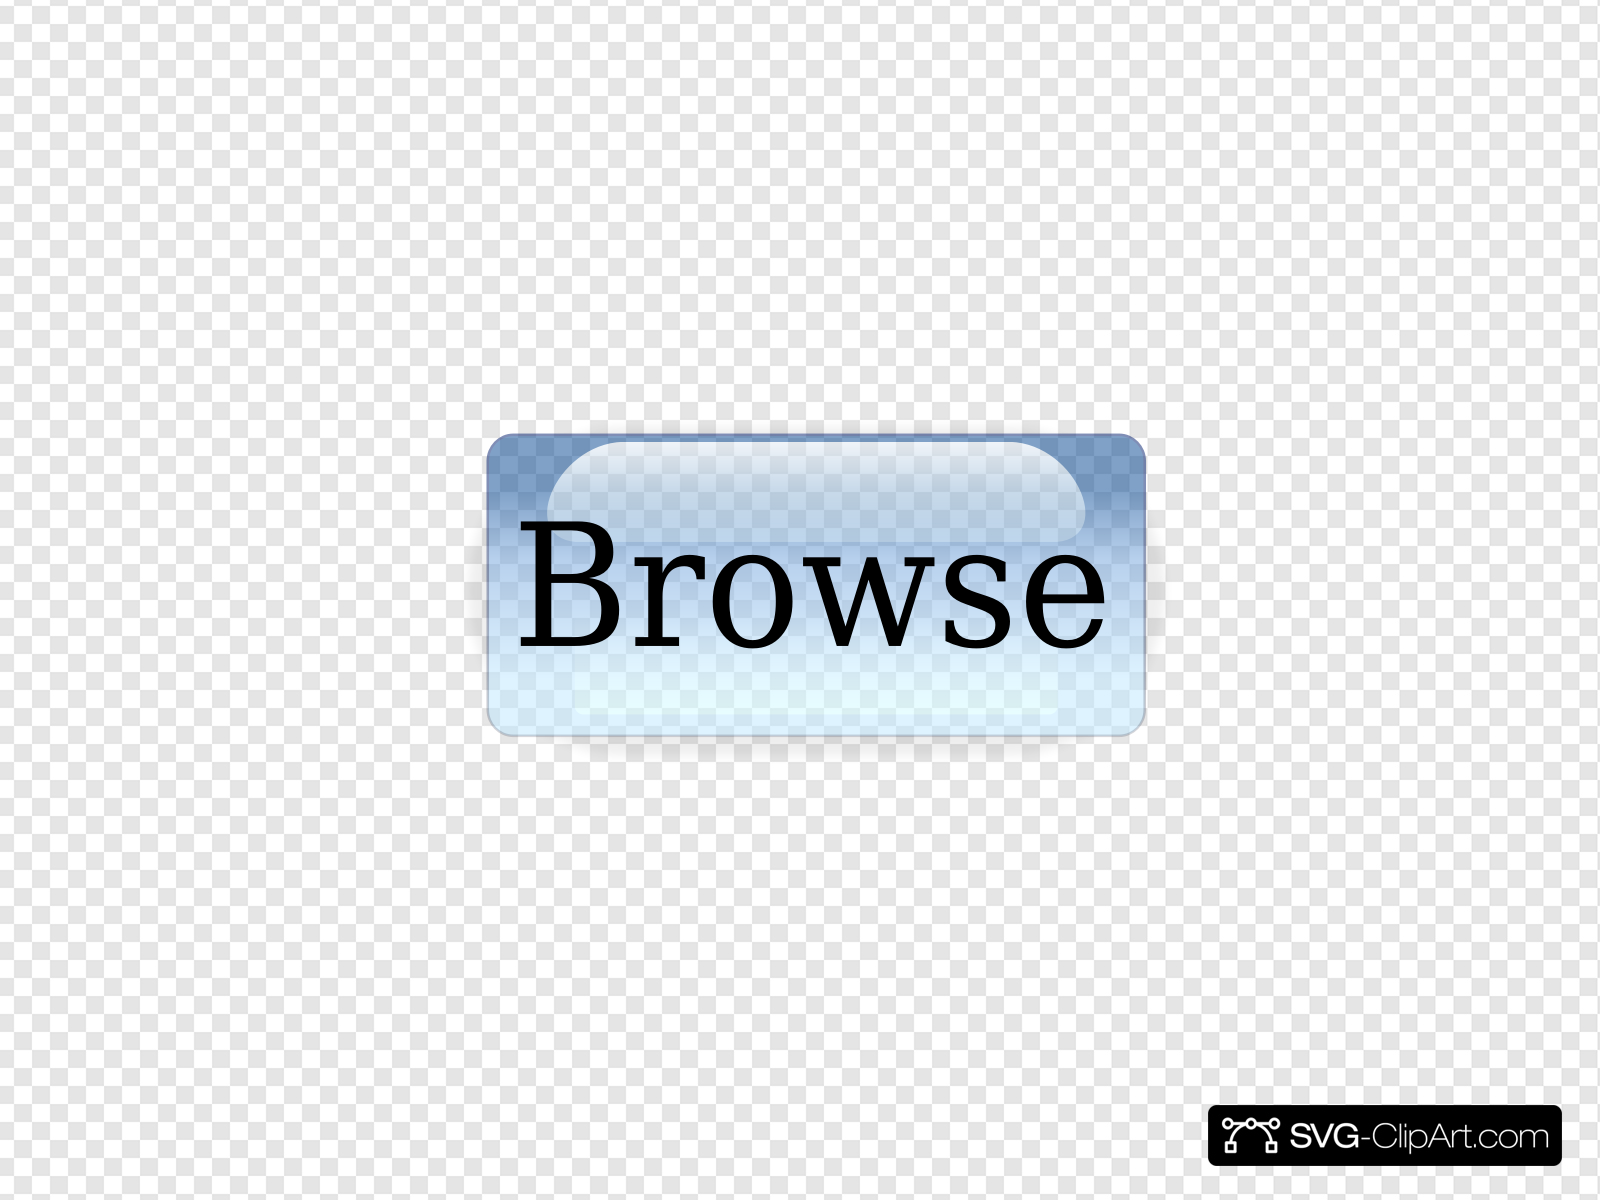 Browse Button.png Clip art, Icon and SVG.